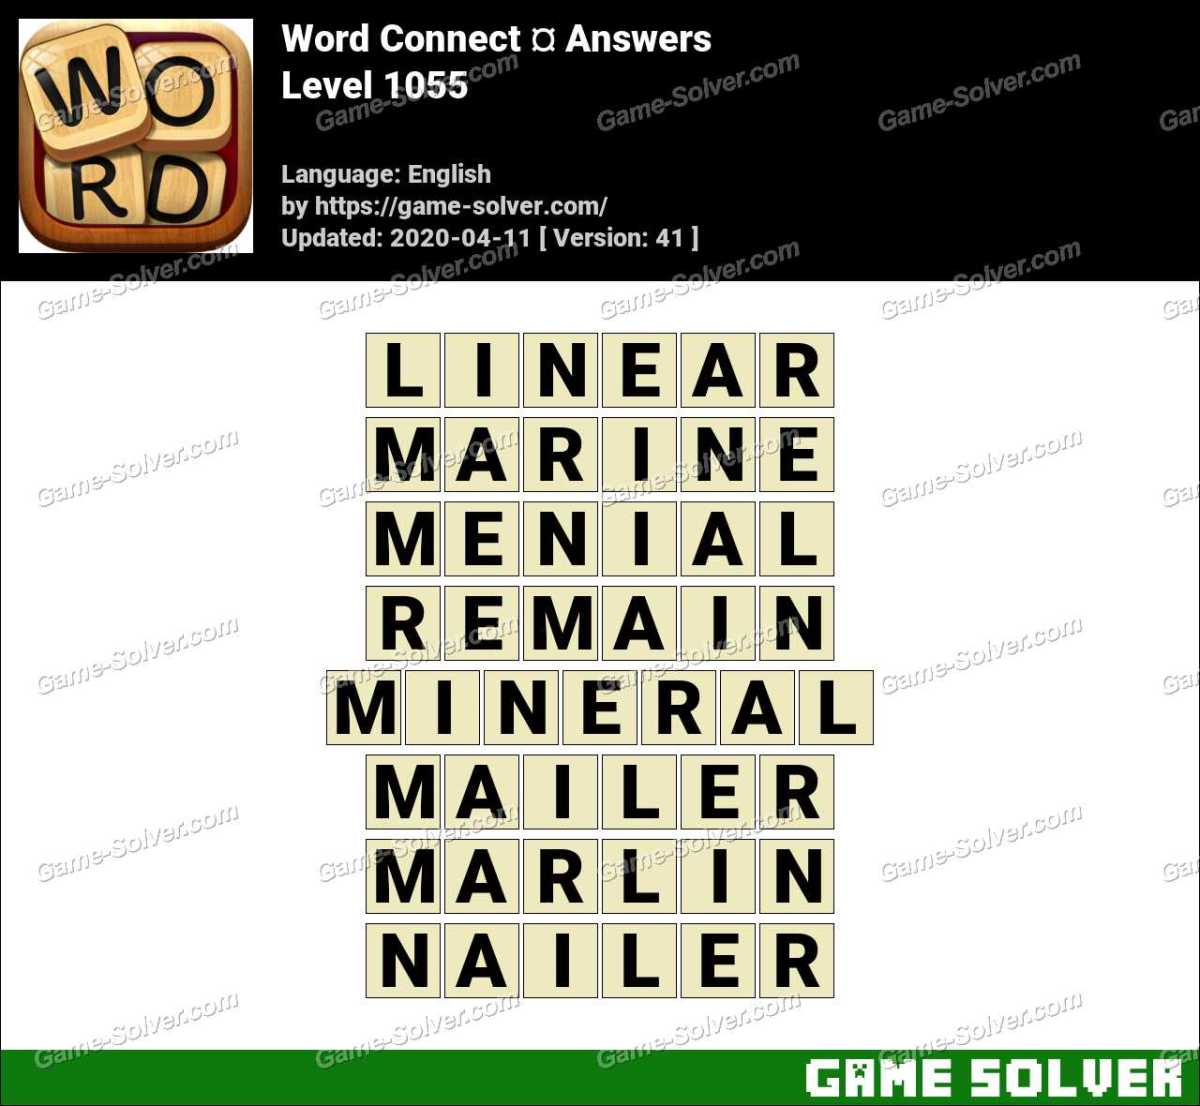 Word Connect Level 1055 Answers